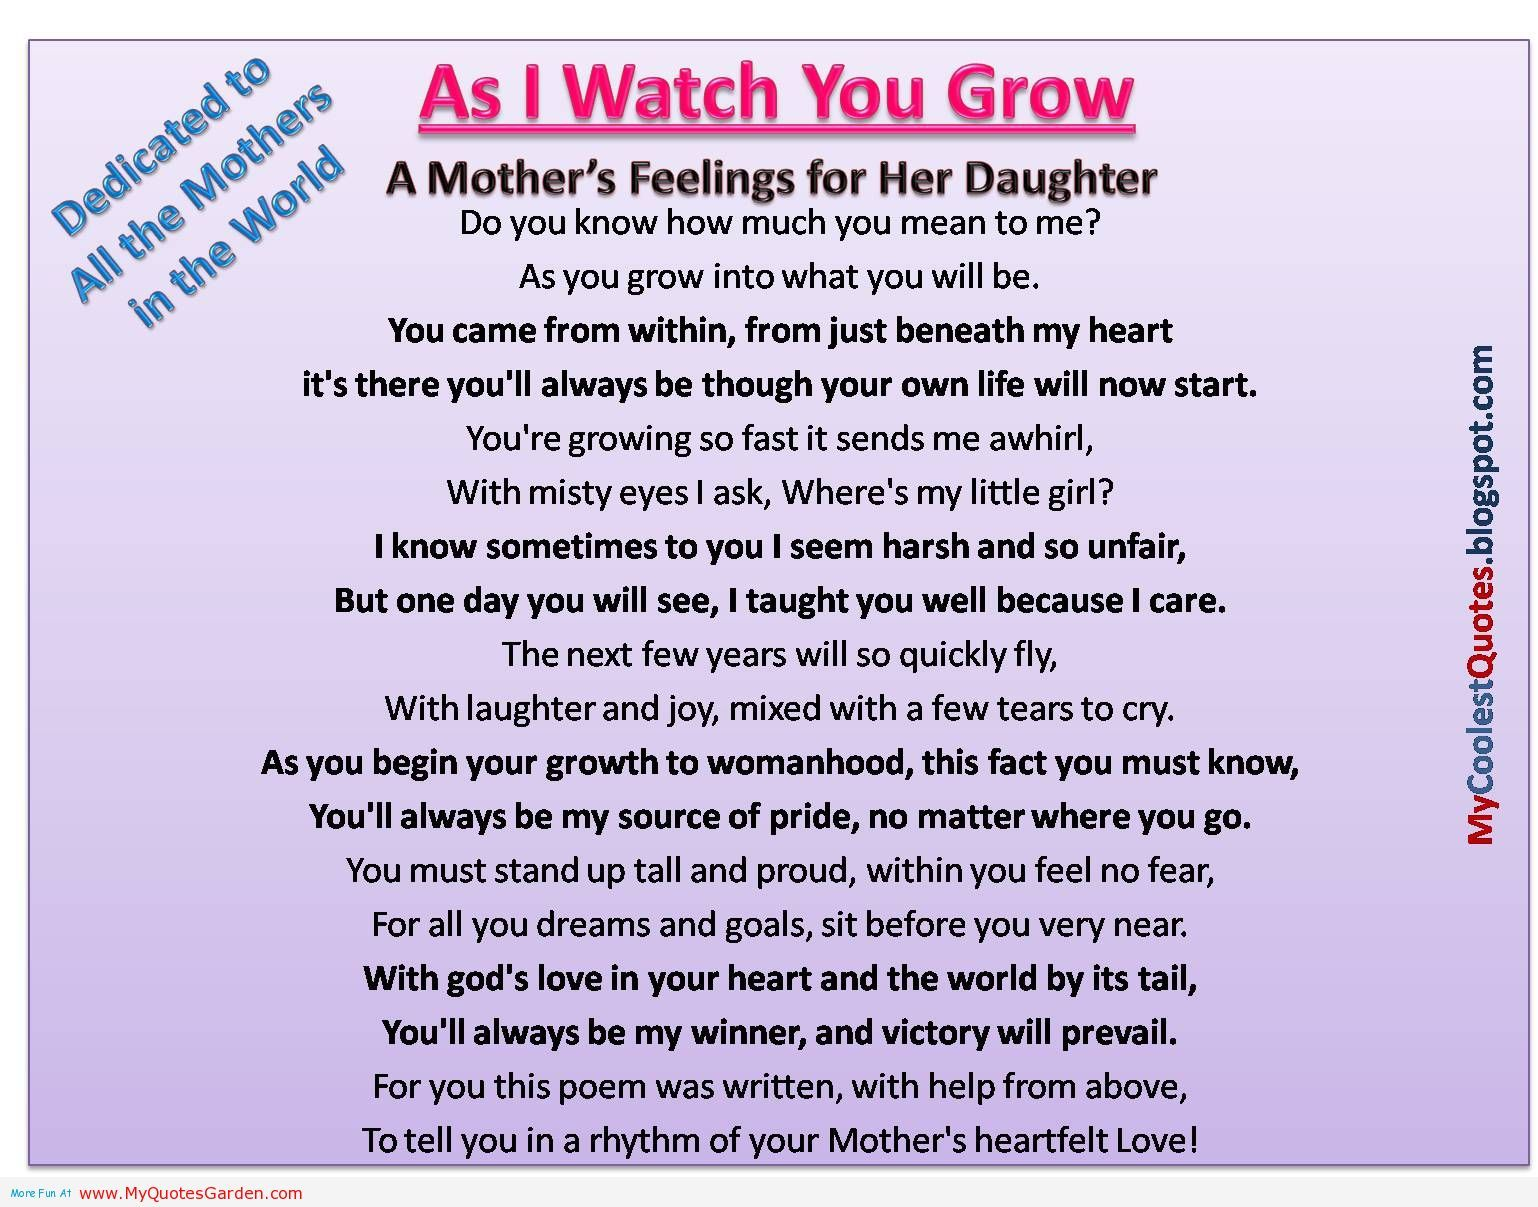 Mother Son Love Quotes Mother's Love For Her Daughter When She Was Growing Up  Mother